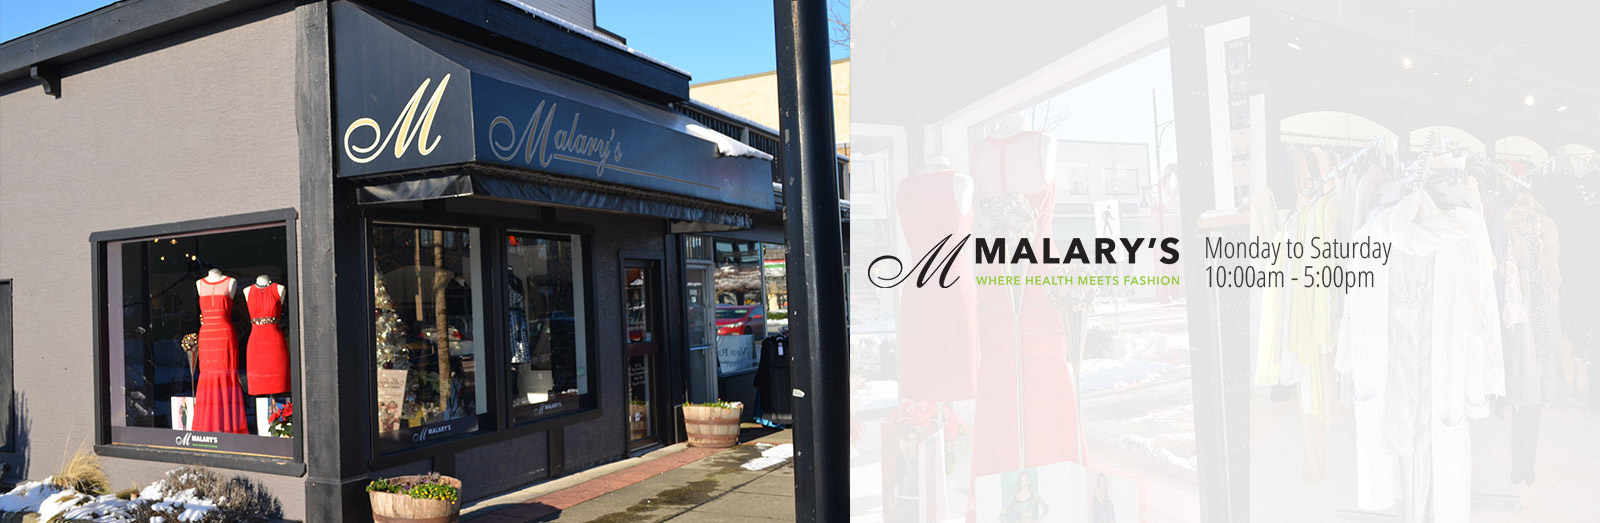 Malary's Fashion in Cloverdale